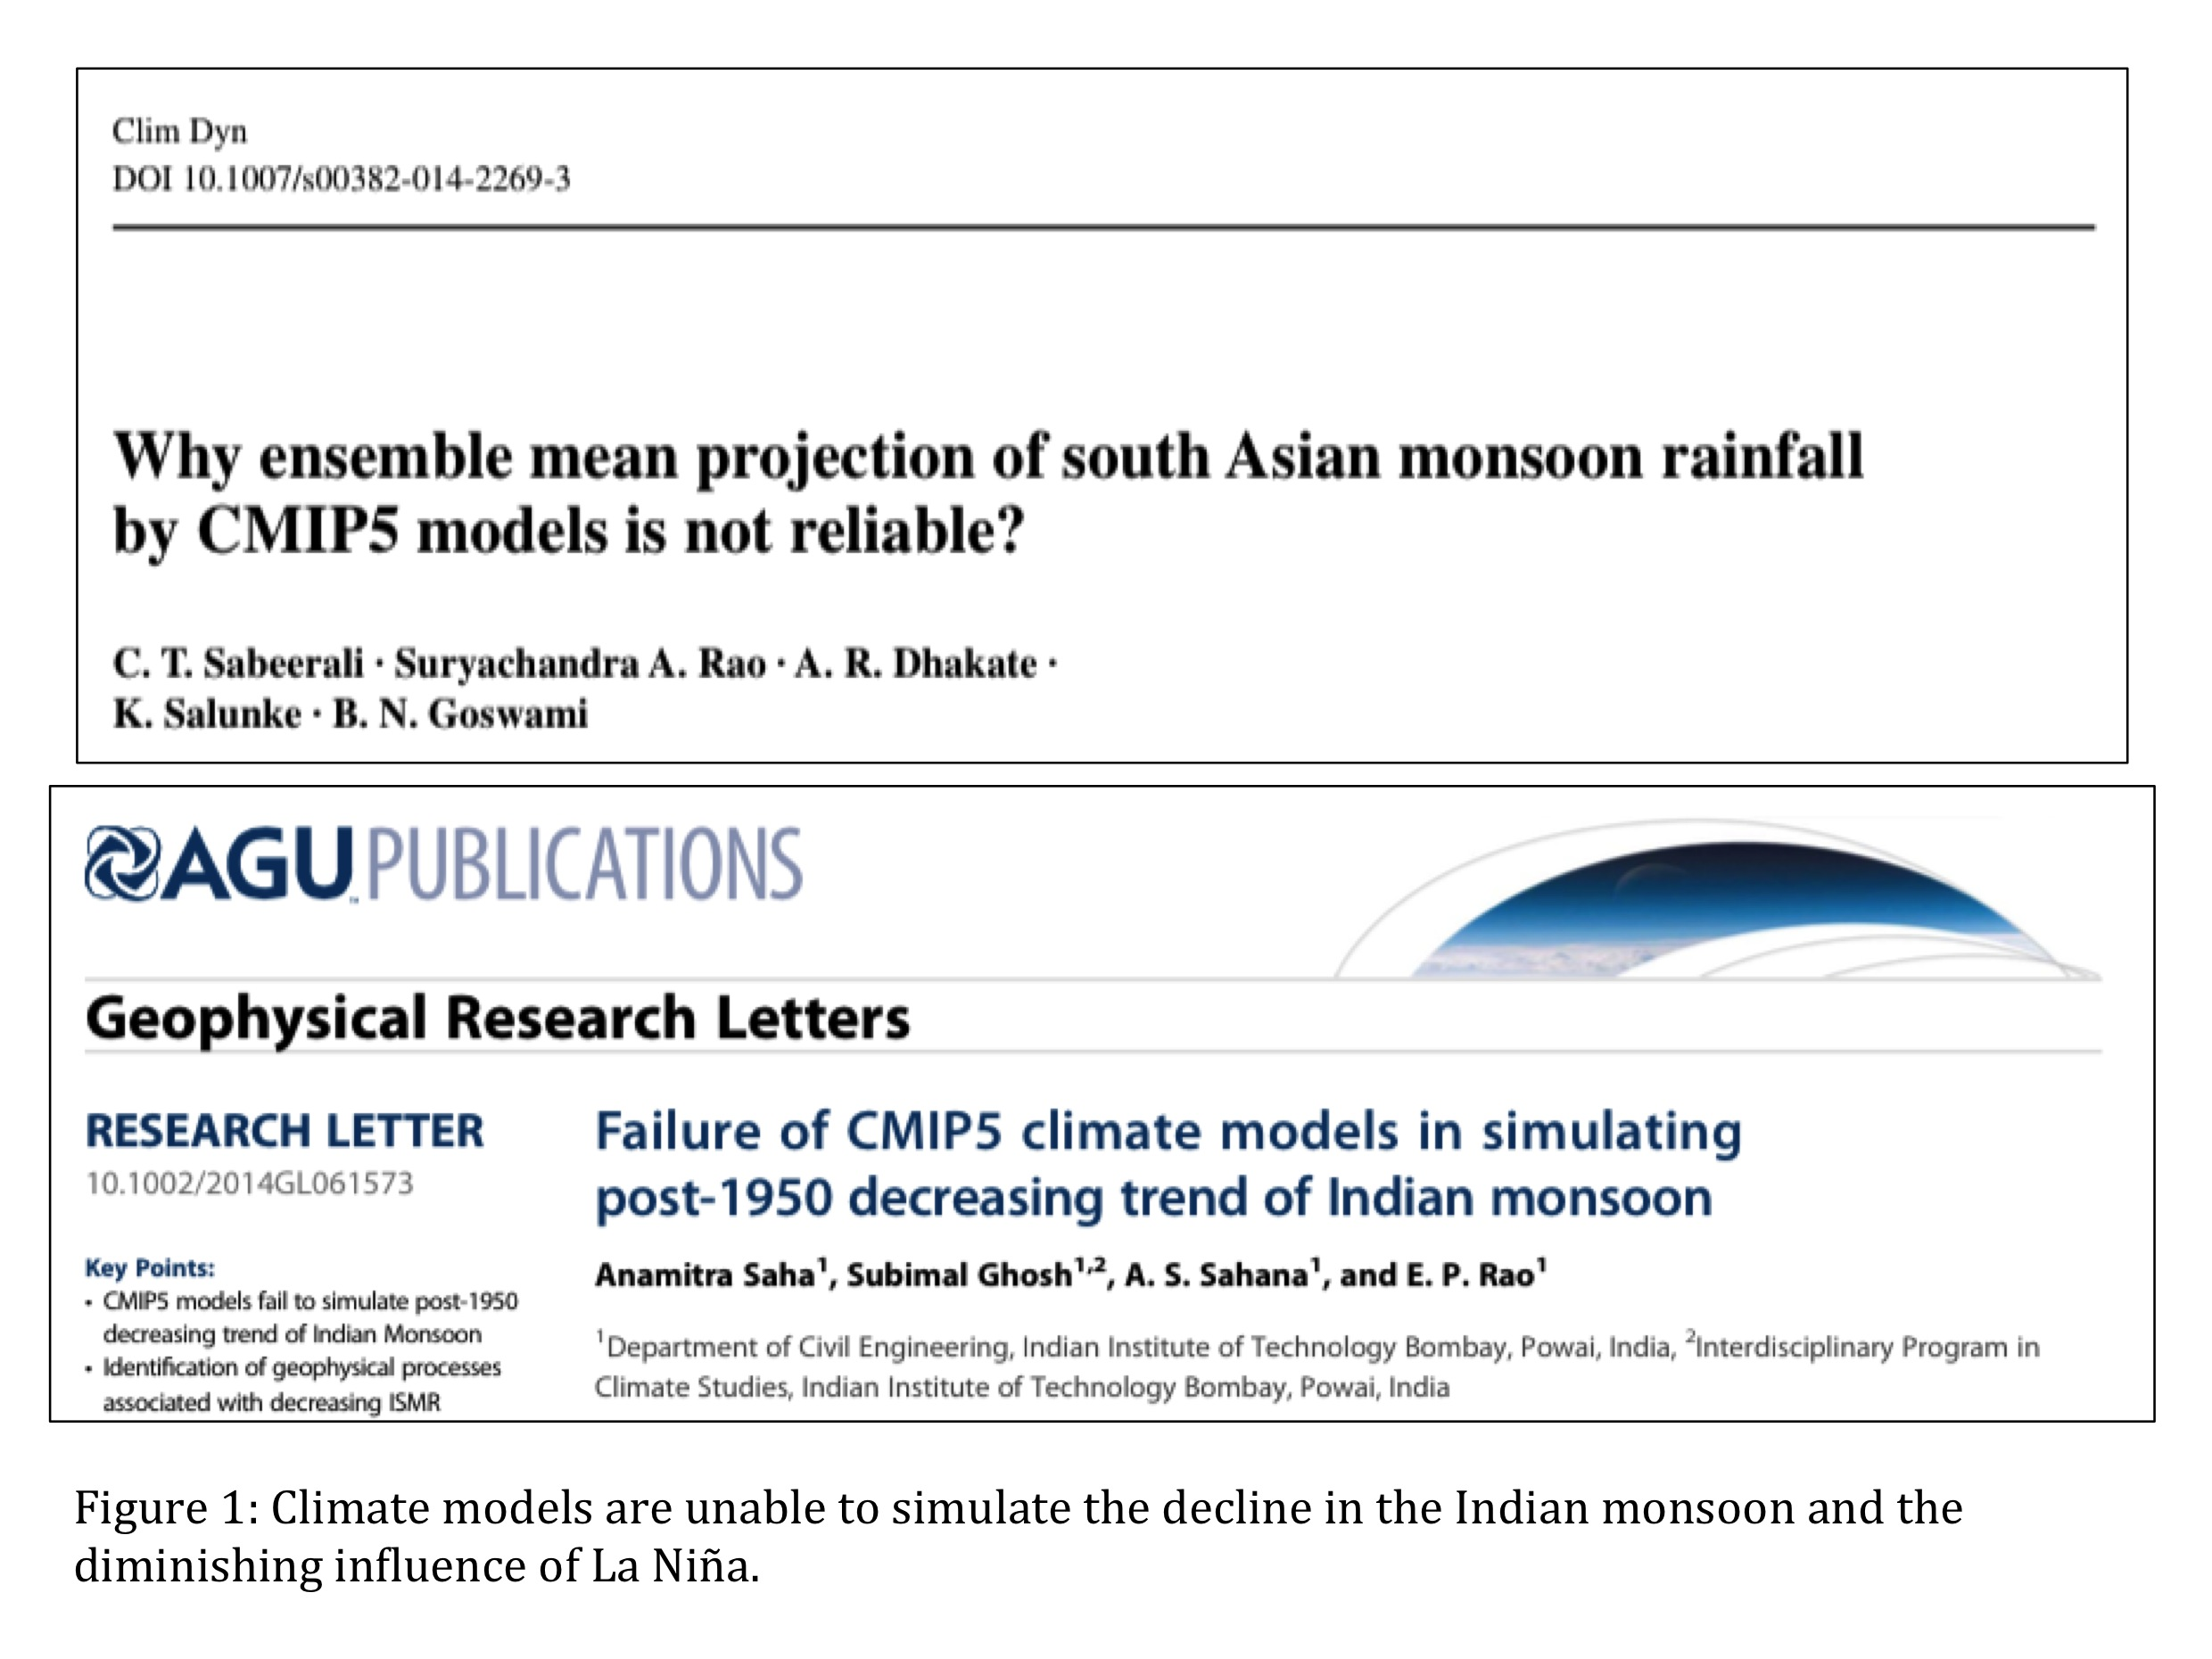 Semi-arid ecosystems in India: Current and future concerns